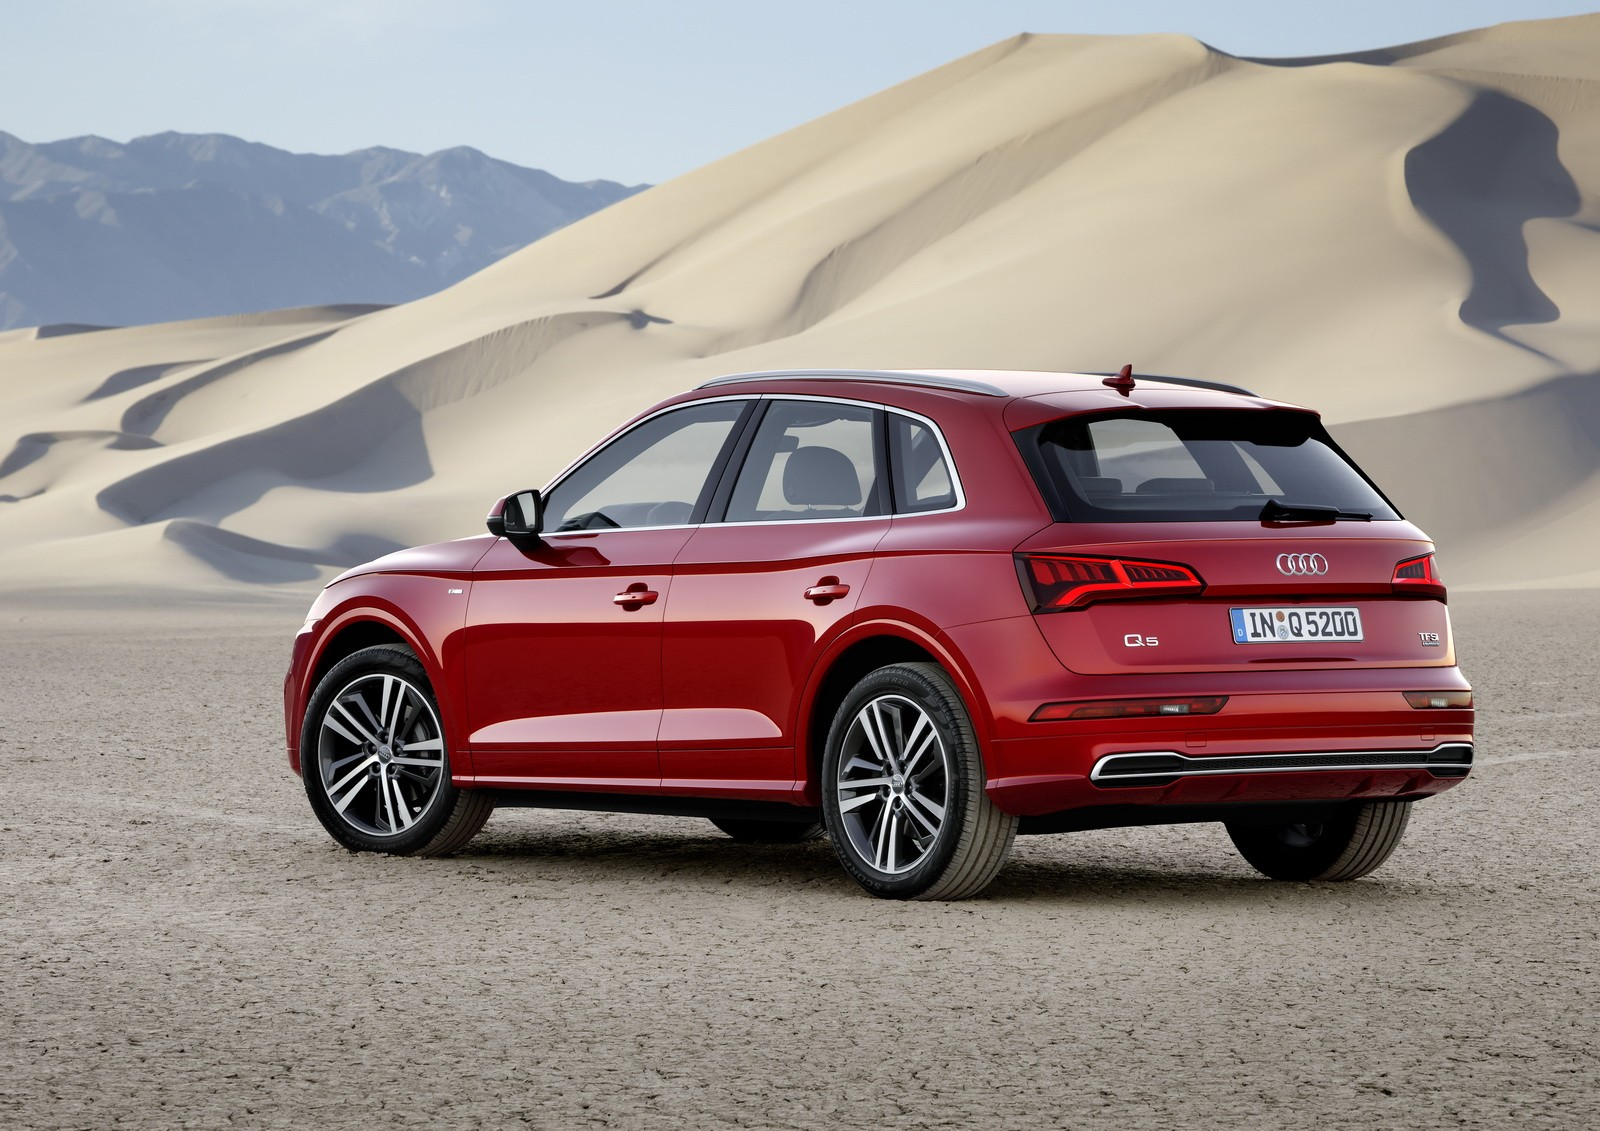 2018 Audi Q5 Rated Best-In-Segment 25 MPG Combined - autoevolution